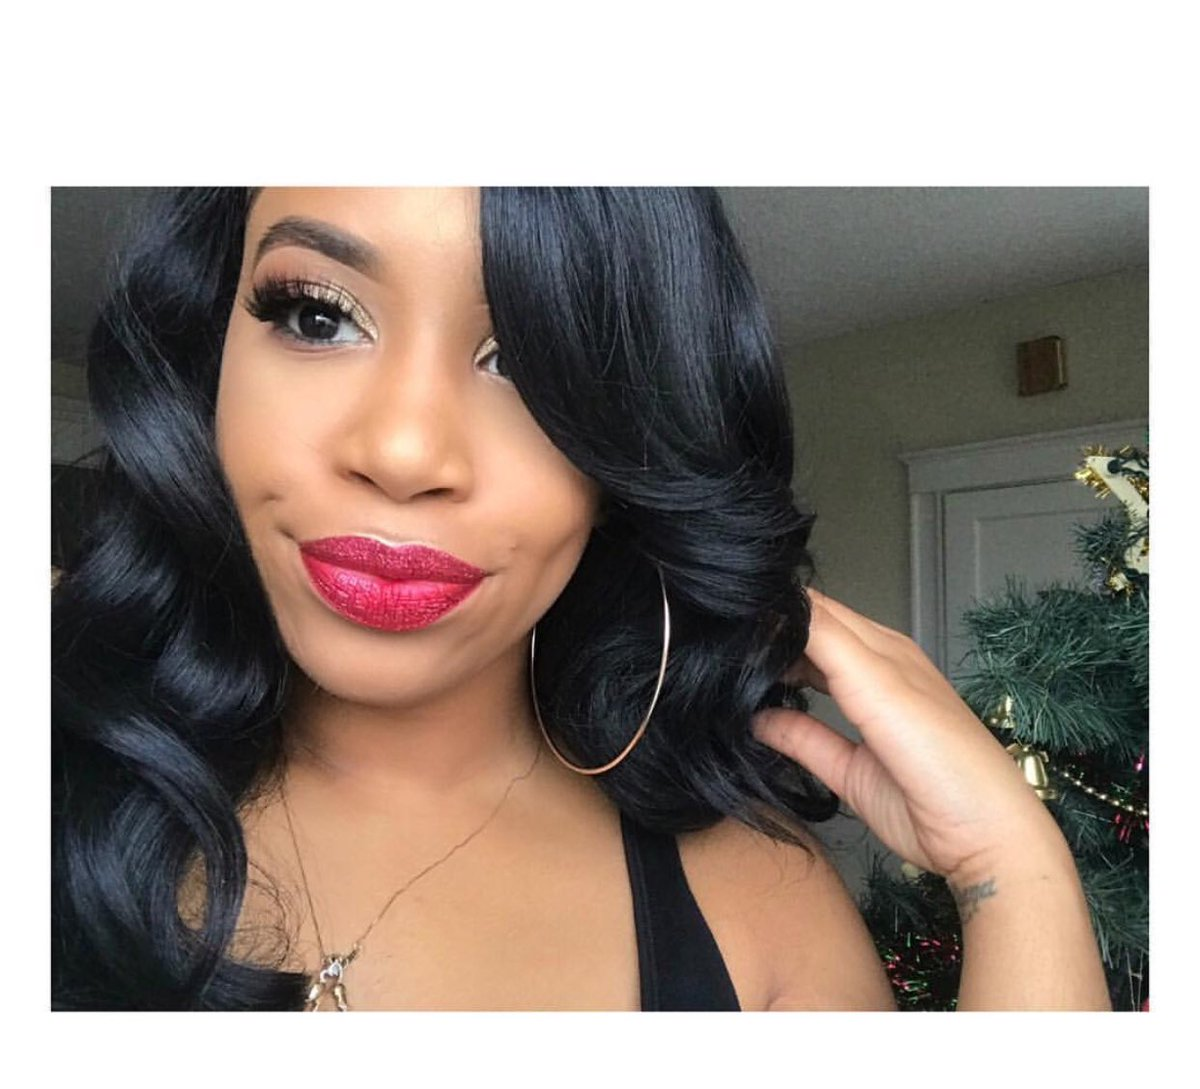 We've lost another Black mother.   #LashondaHazard was a pregnant 27 year old who died on January 7, 2019 at Women & Infants Hospital of Rhode Island.  She died because her concerns for HERSELF were NOT being addressed + taken seriously by the MEDICAL staff. #blackmaternalhealth